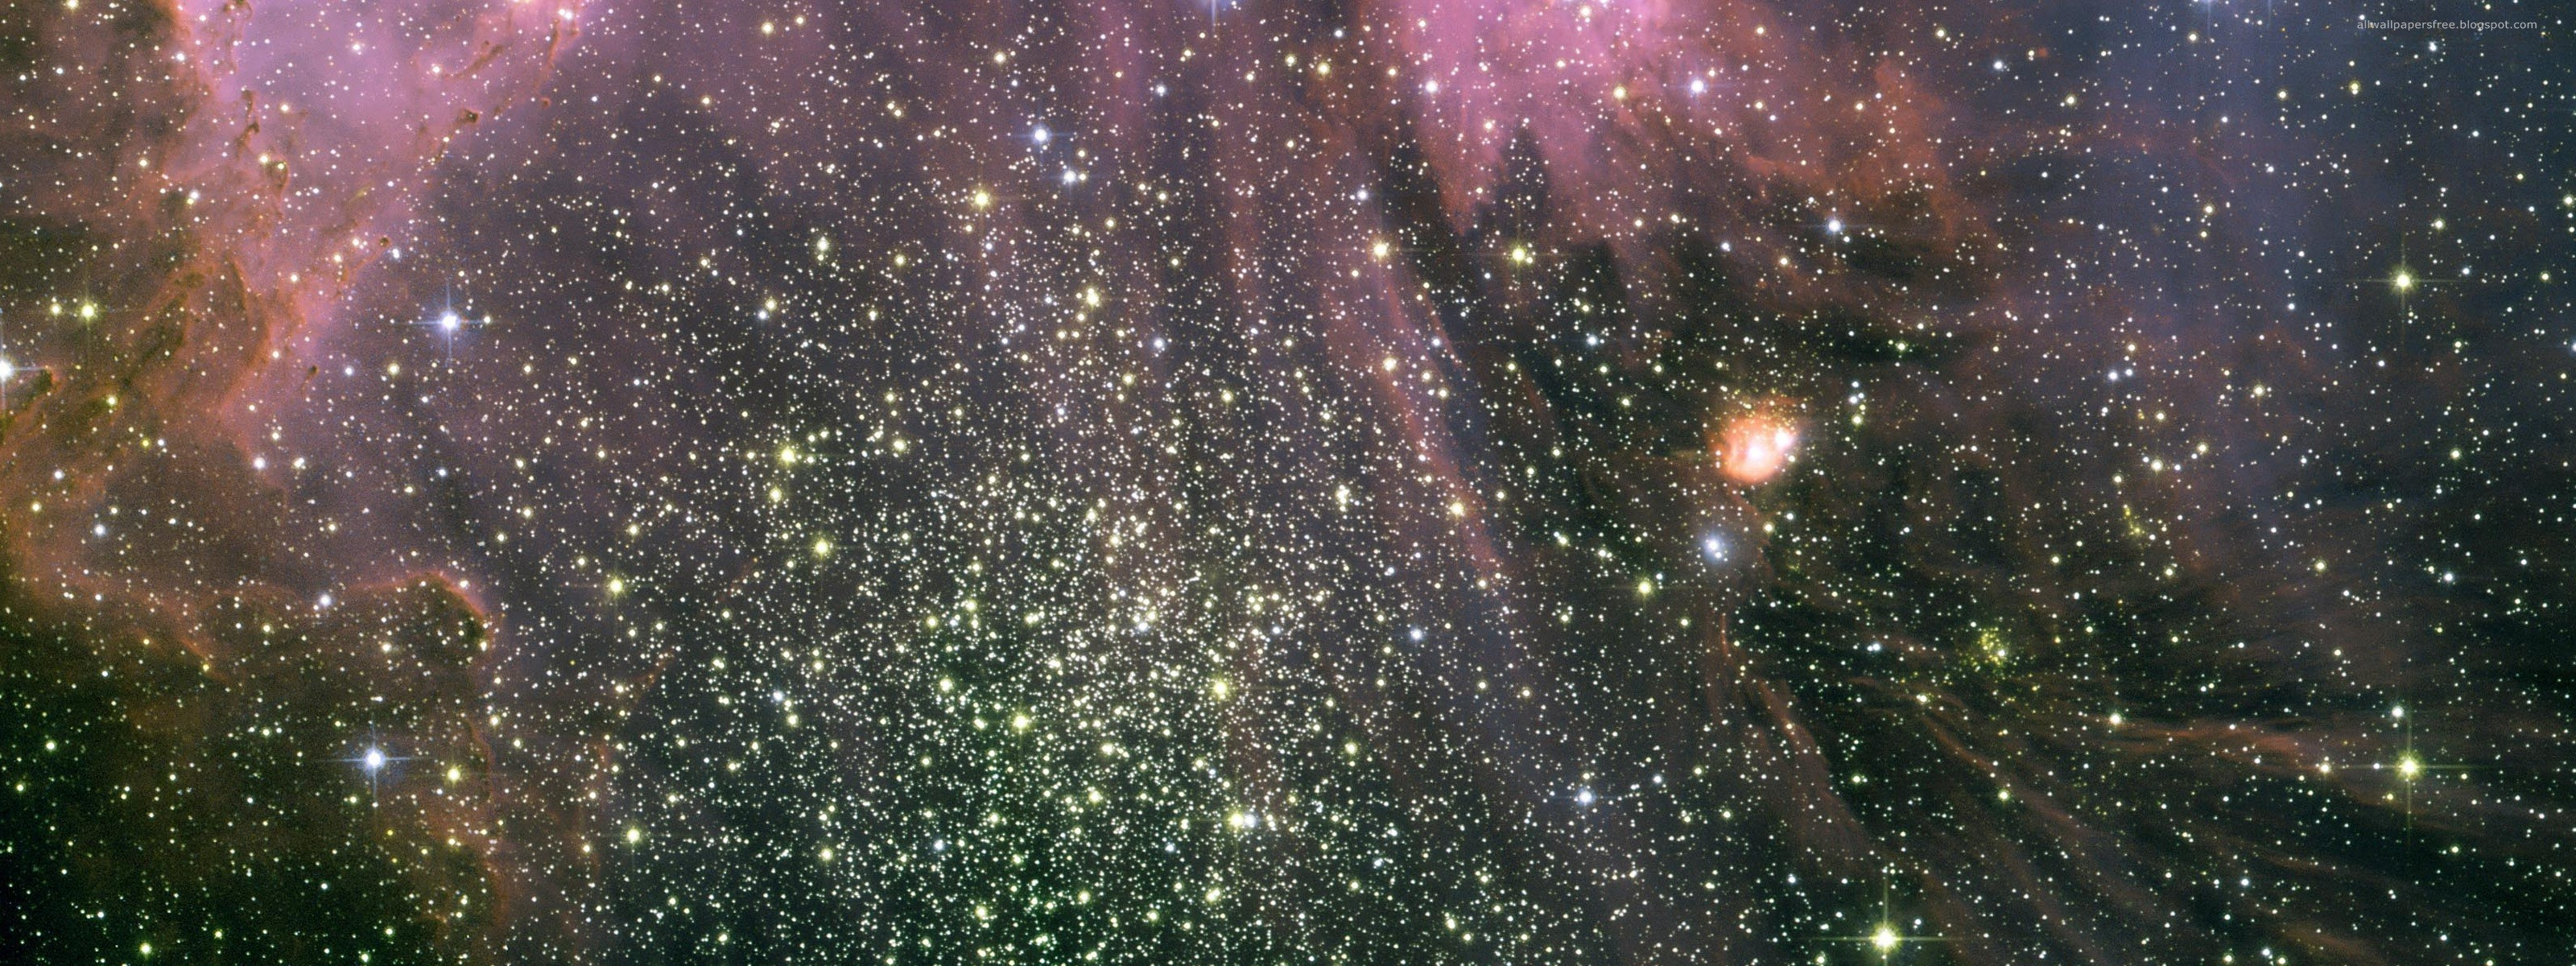 Outer space hubble wallpaper | | 22247 | WallpaperUP